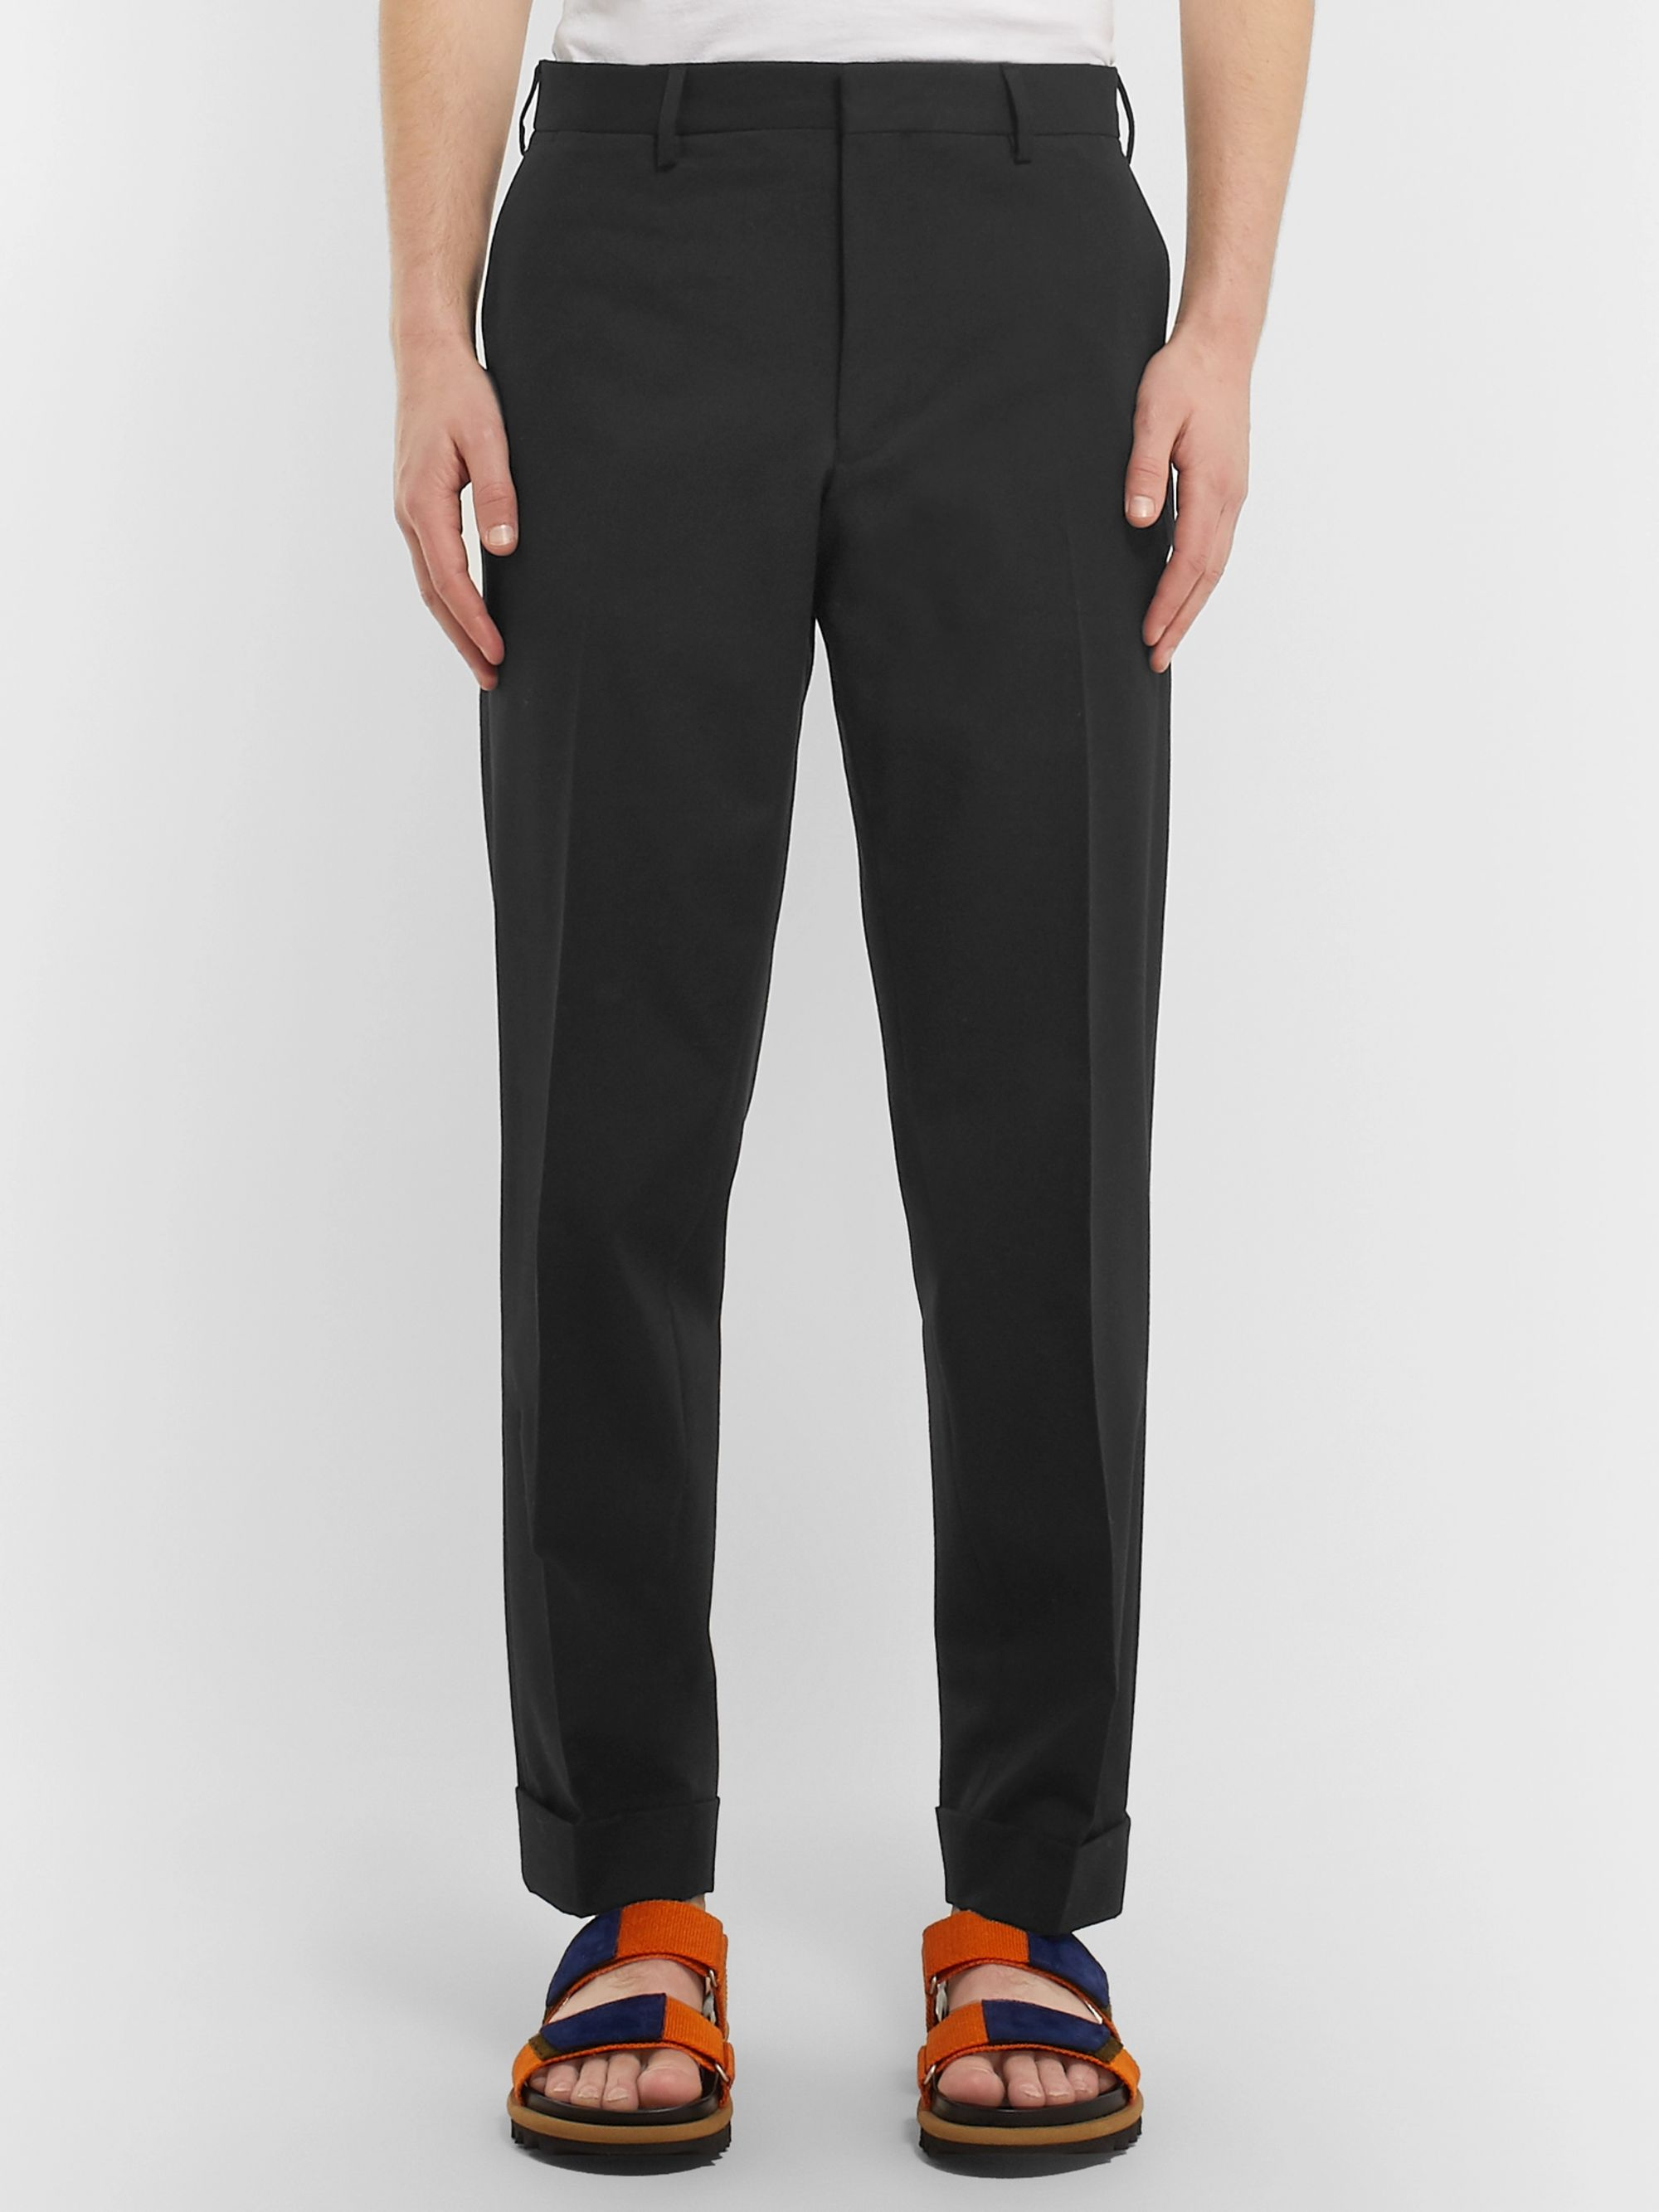 Dries Van Noten Black Cotton and Wool-Blend Trousers